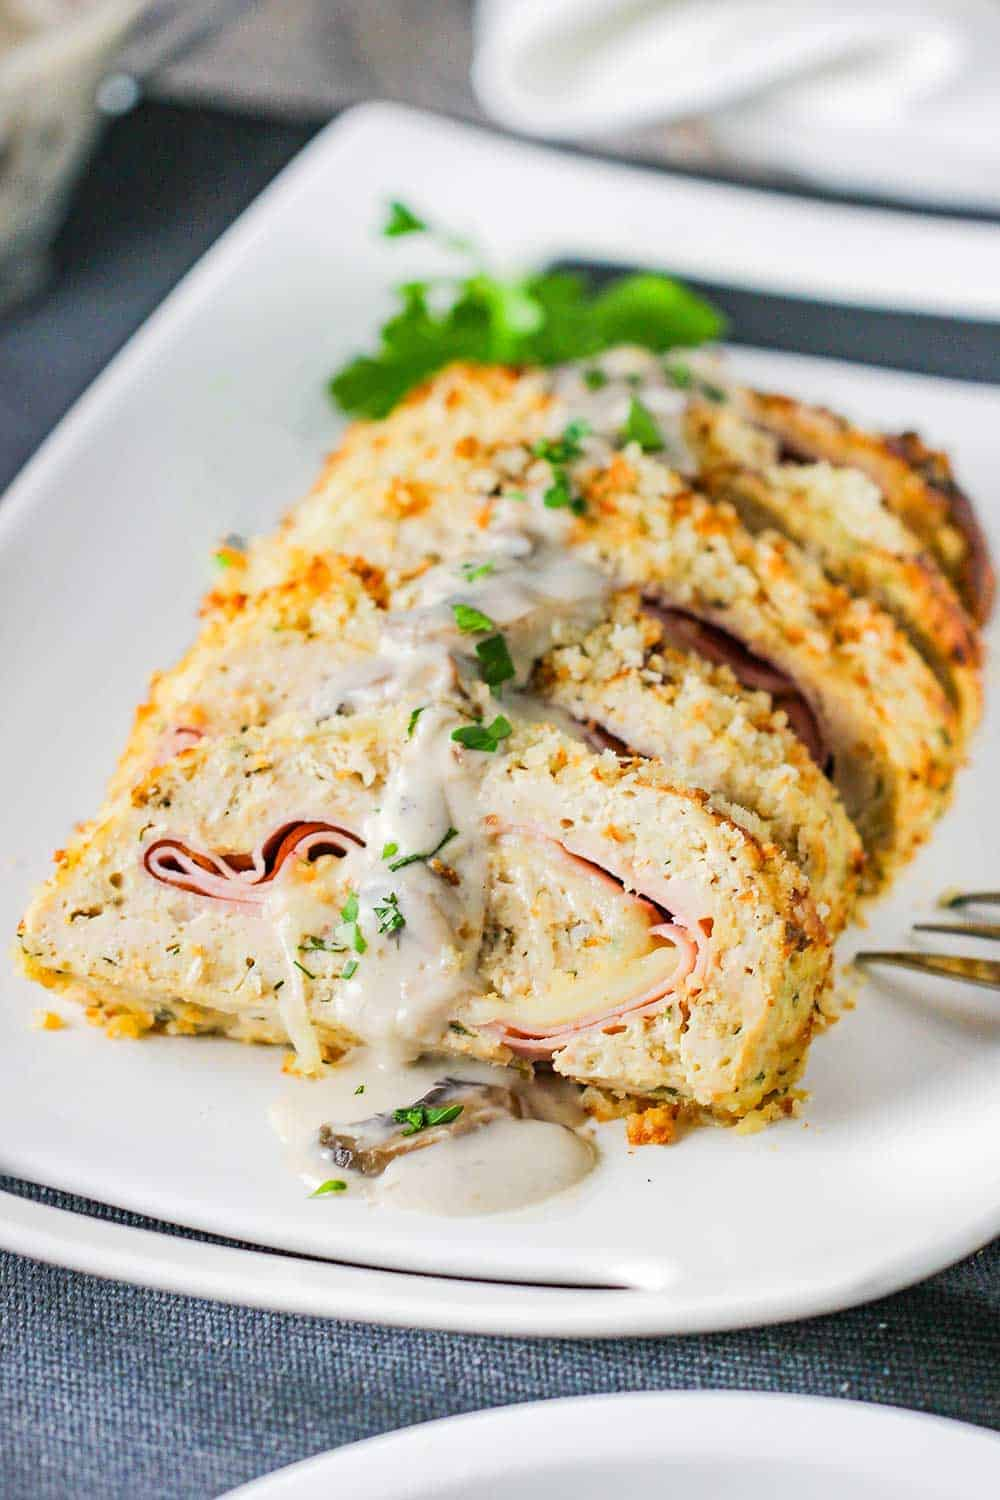 A white platter holding sliced cordon bleu meatloaf with a mushroom gravy drizzled over the top.